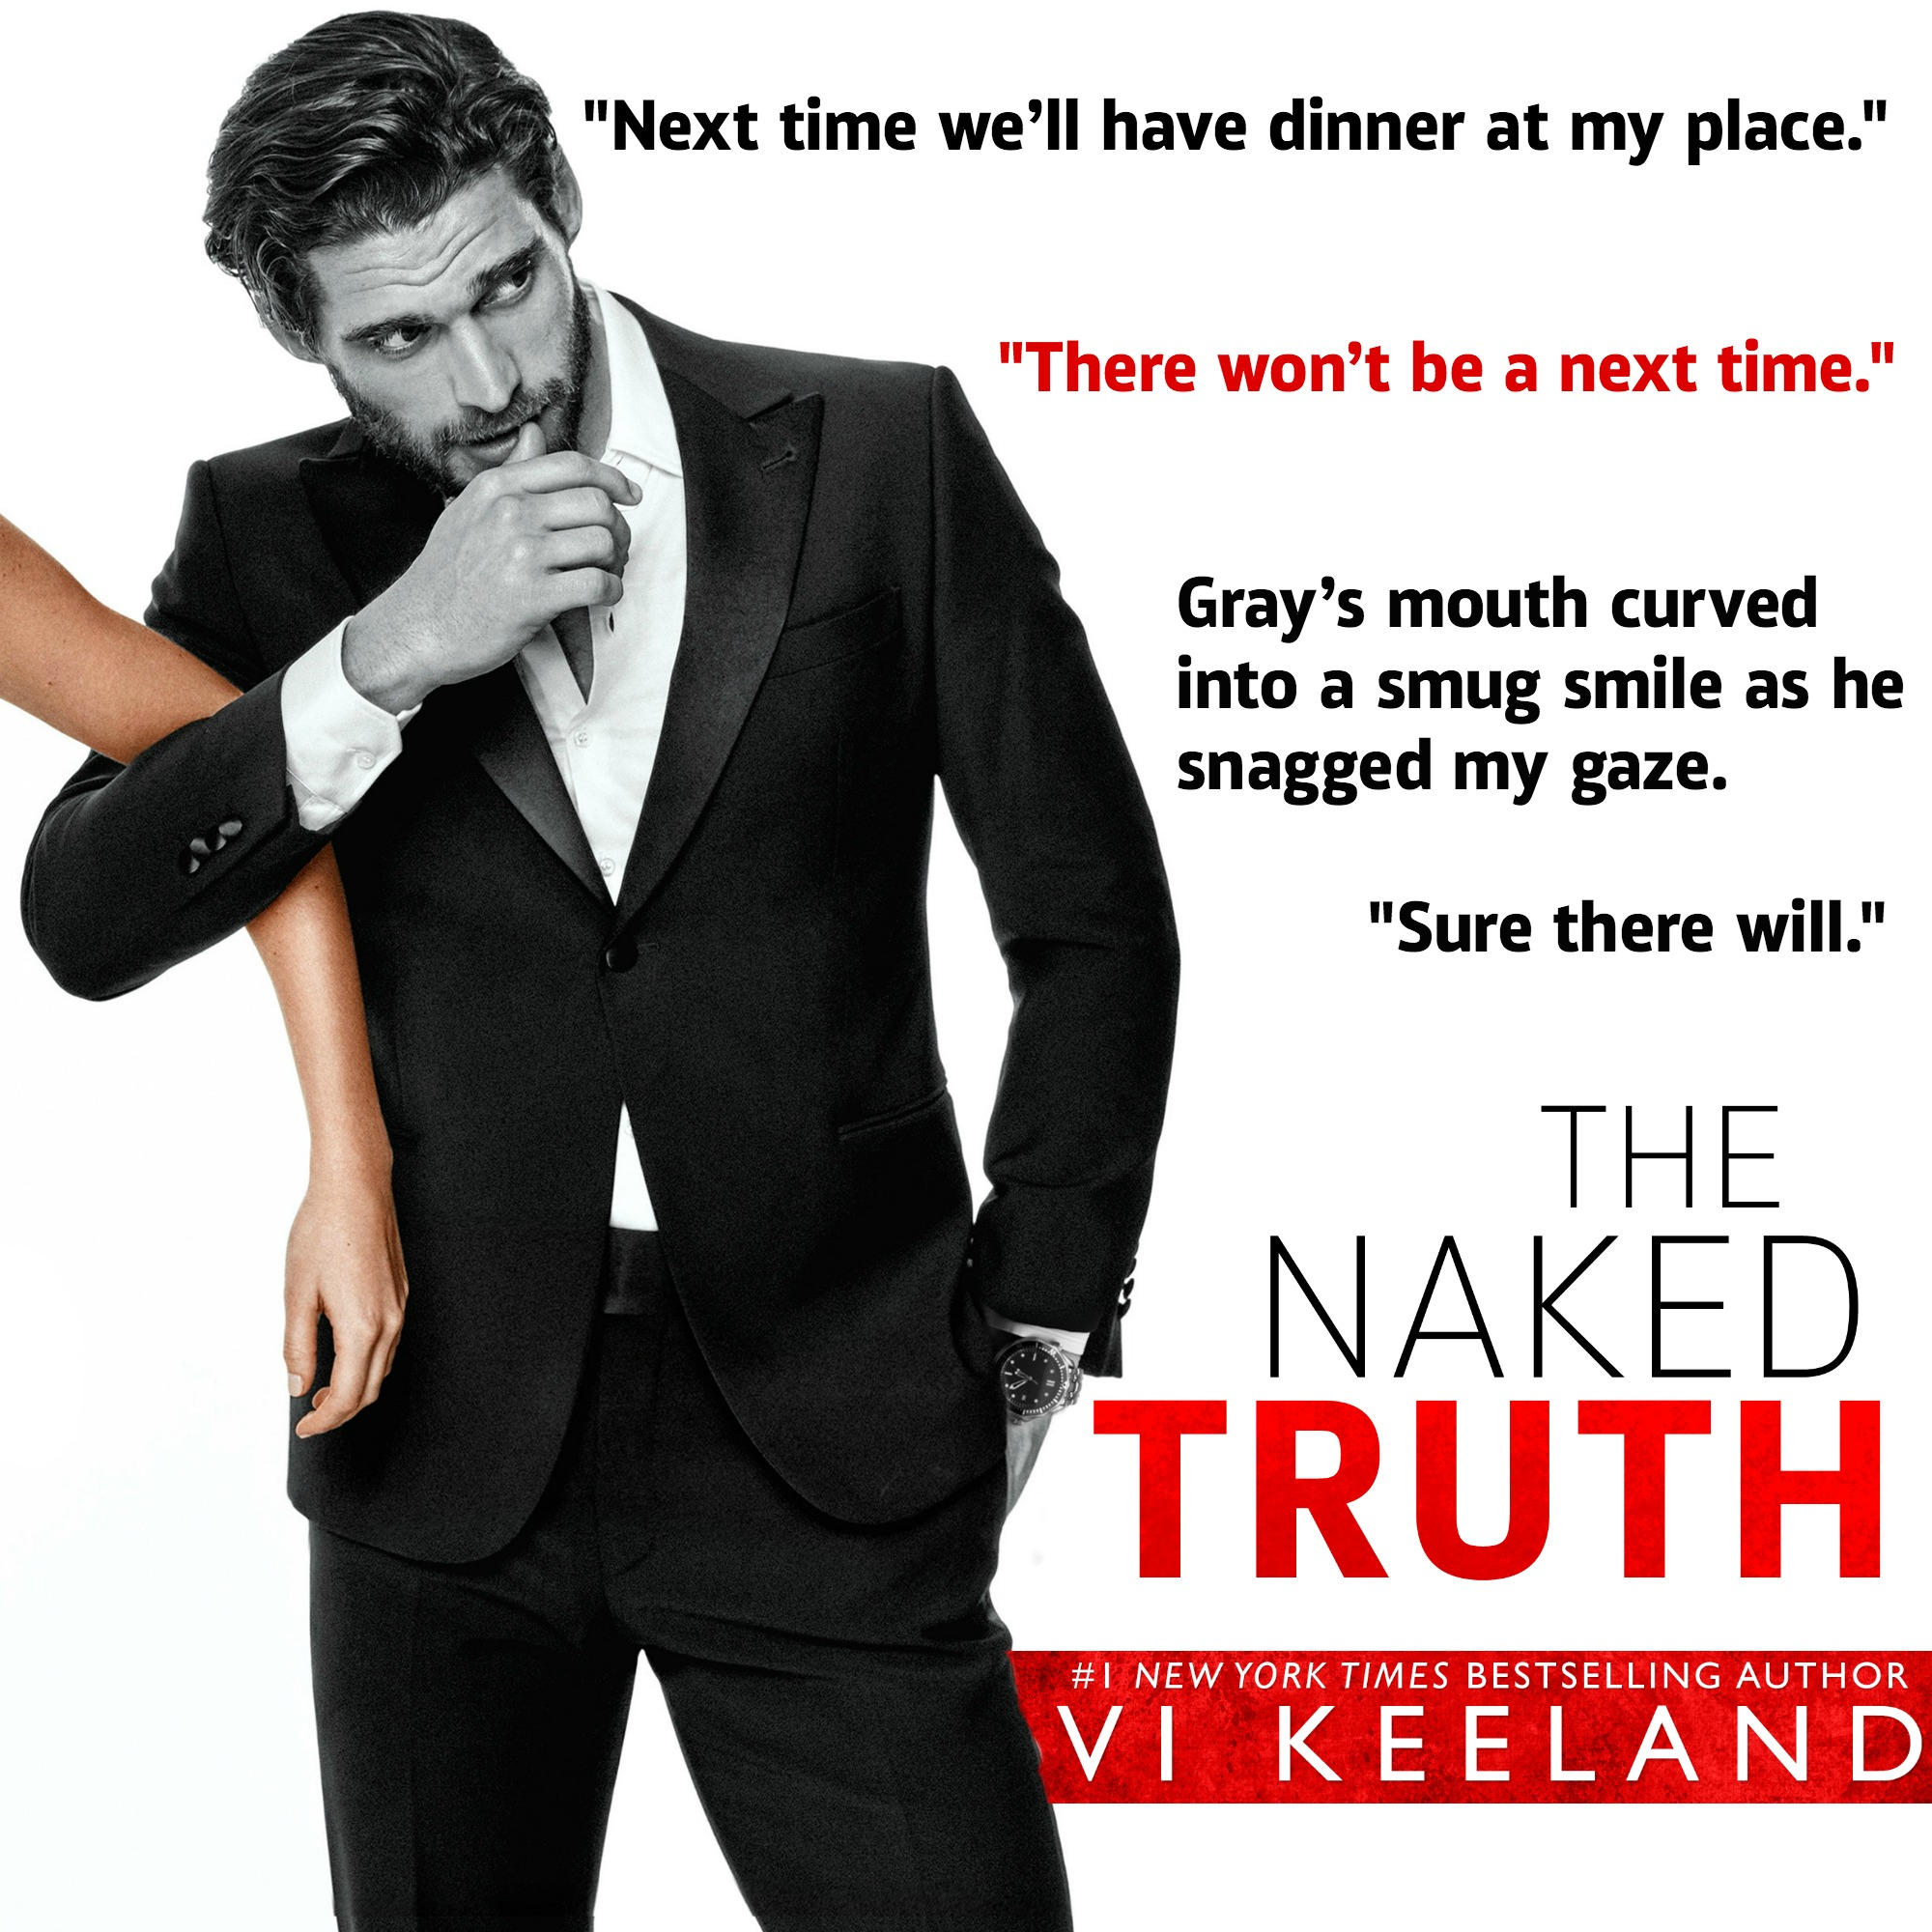 Sneak Peek: The Naked Truth by Vi Keeland